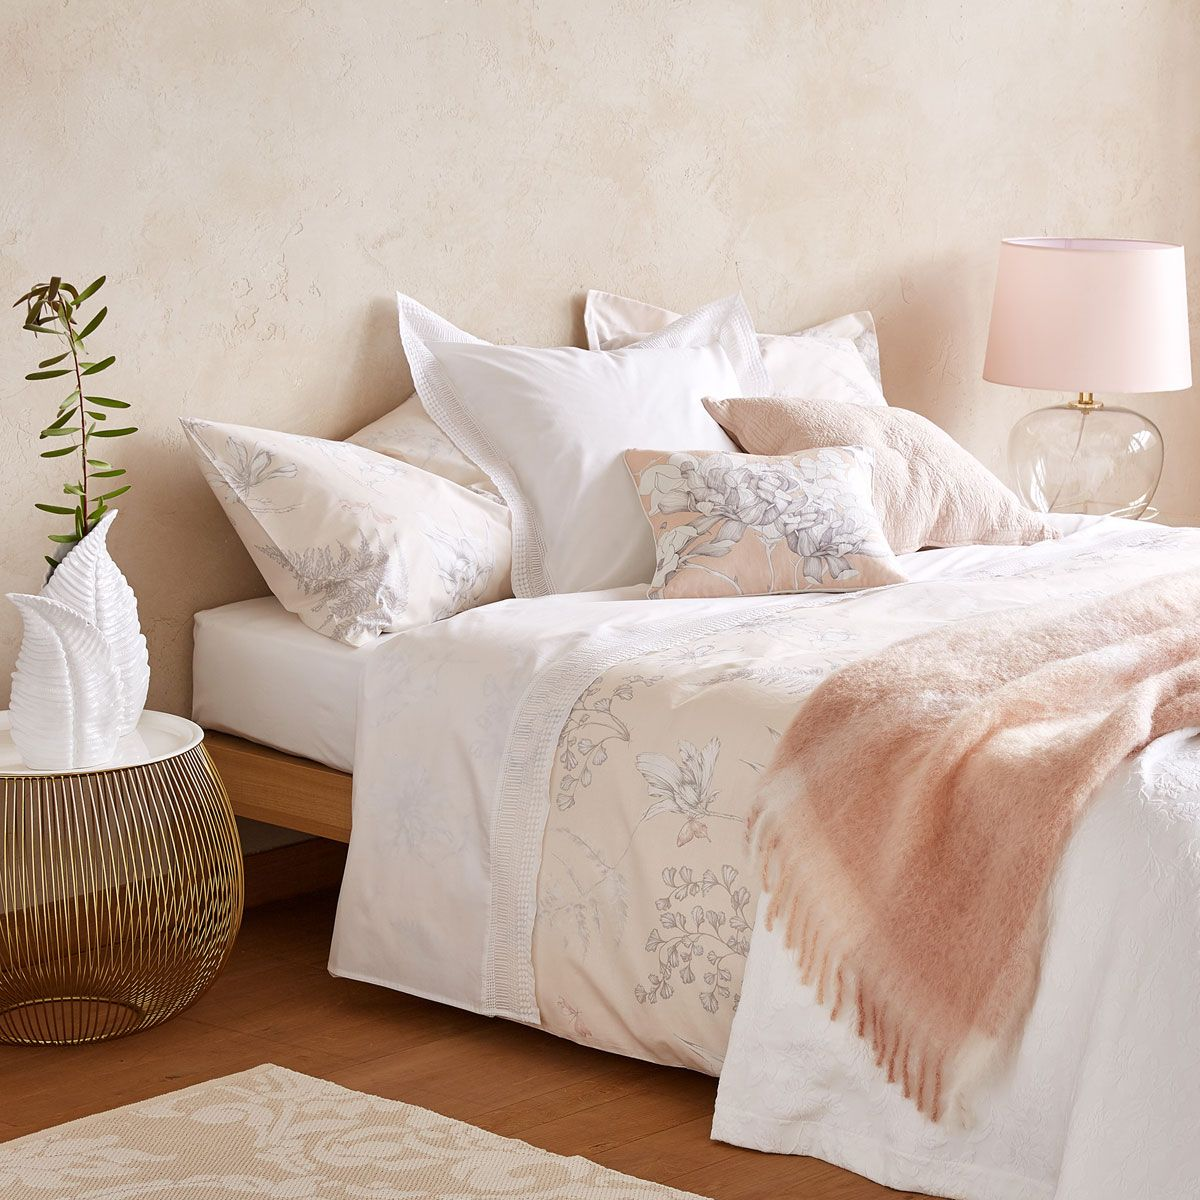 image 1 of the product | bedroom sale, zara home, interior